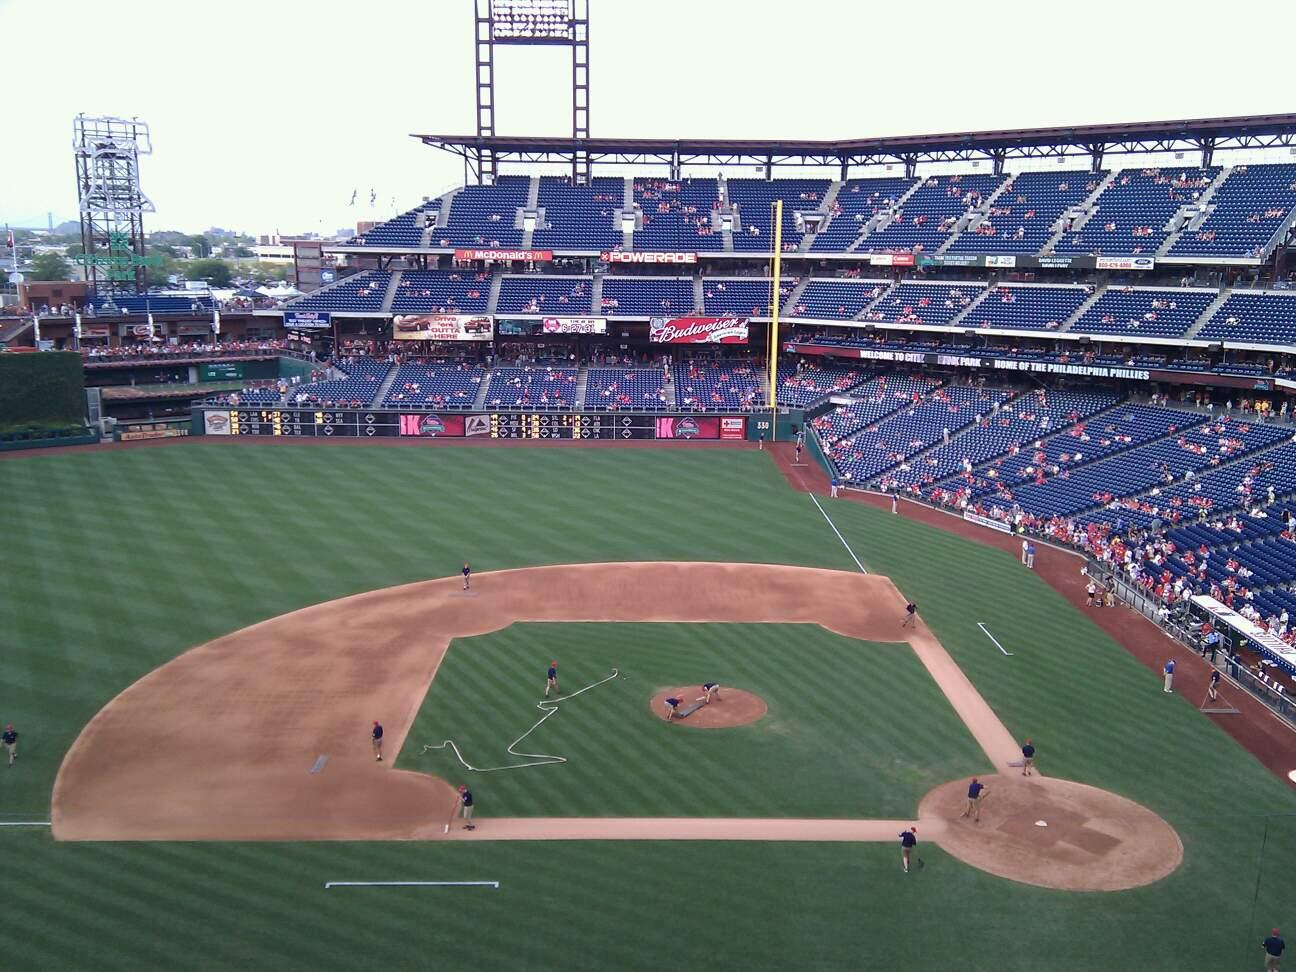 Citizens Bank Park Section 325 Row 1 Seat 24